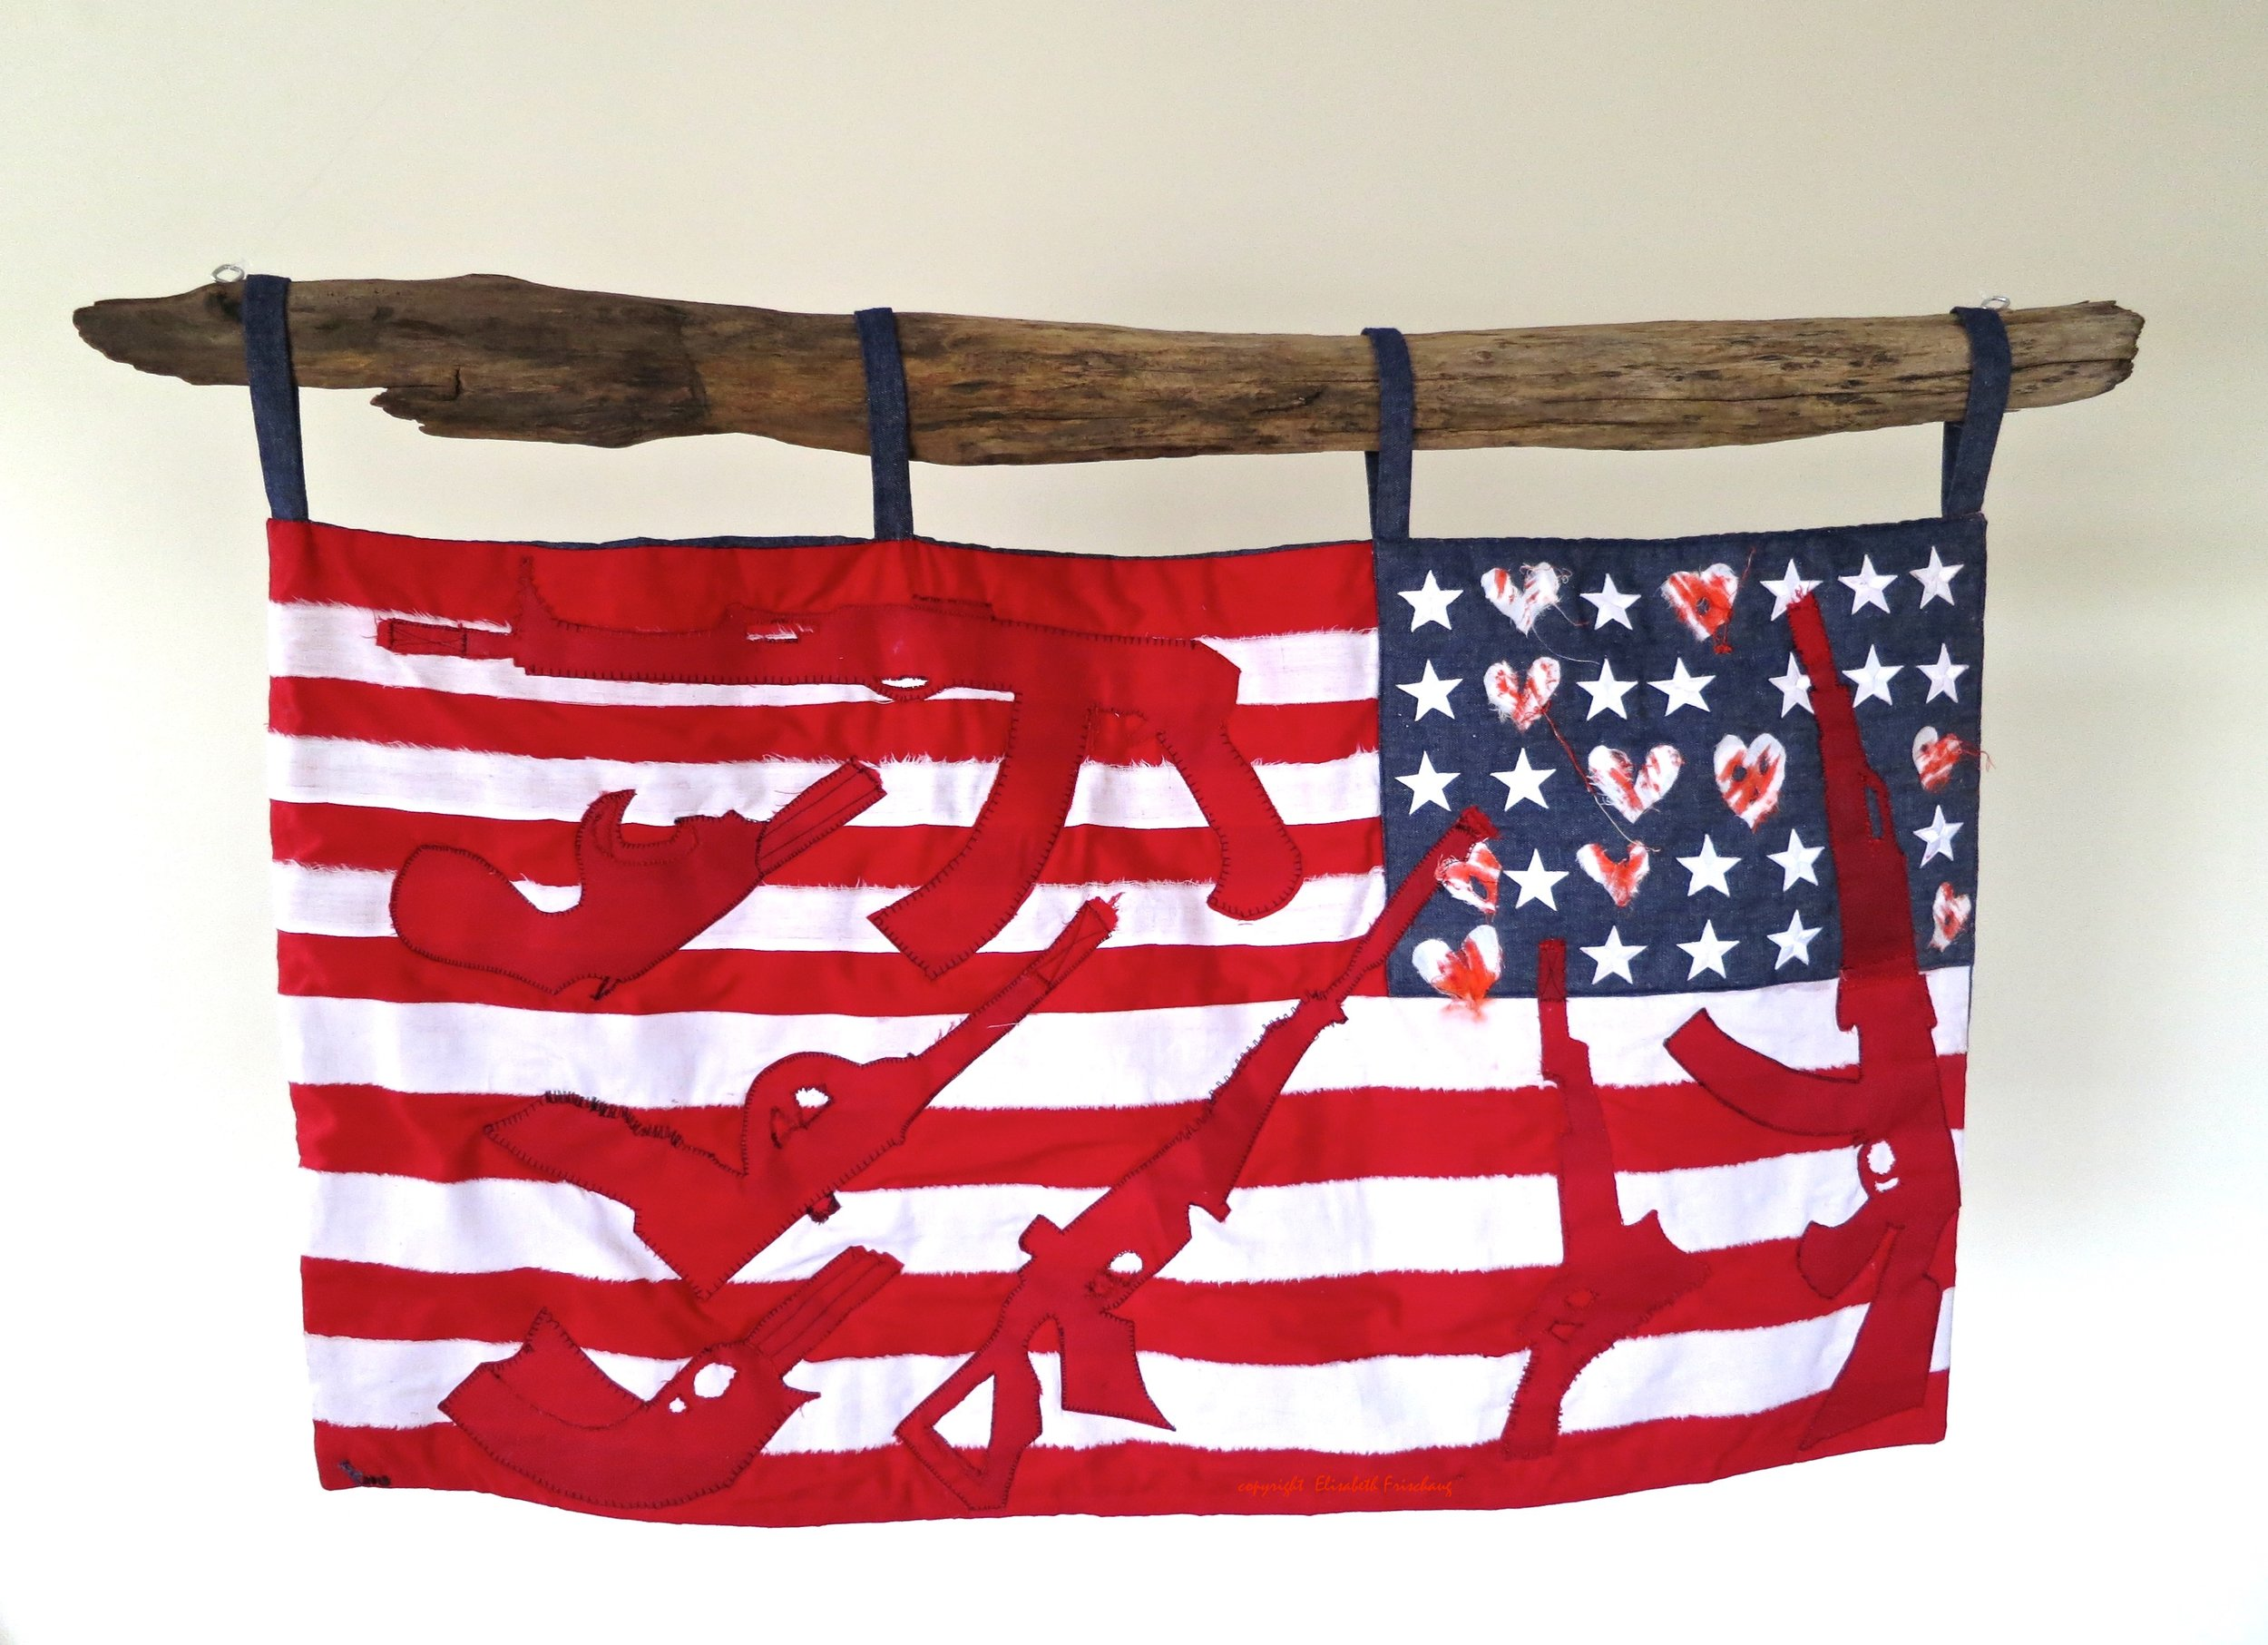 """America Under Gun, quilted mixed media flag, 33"""" across x 45"""" long, featured in the Nation and widely shown, it remains timely with more and more mass shootings"""